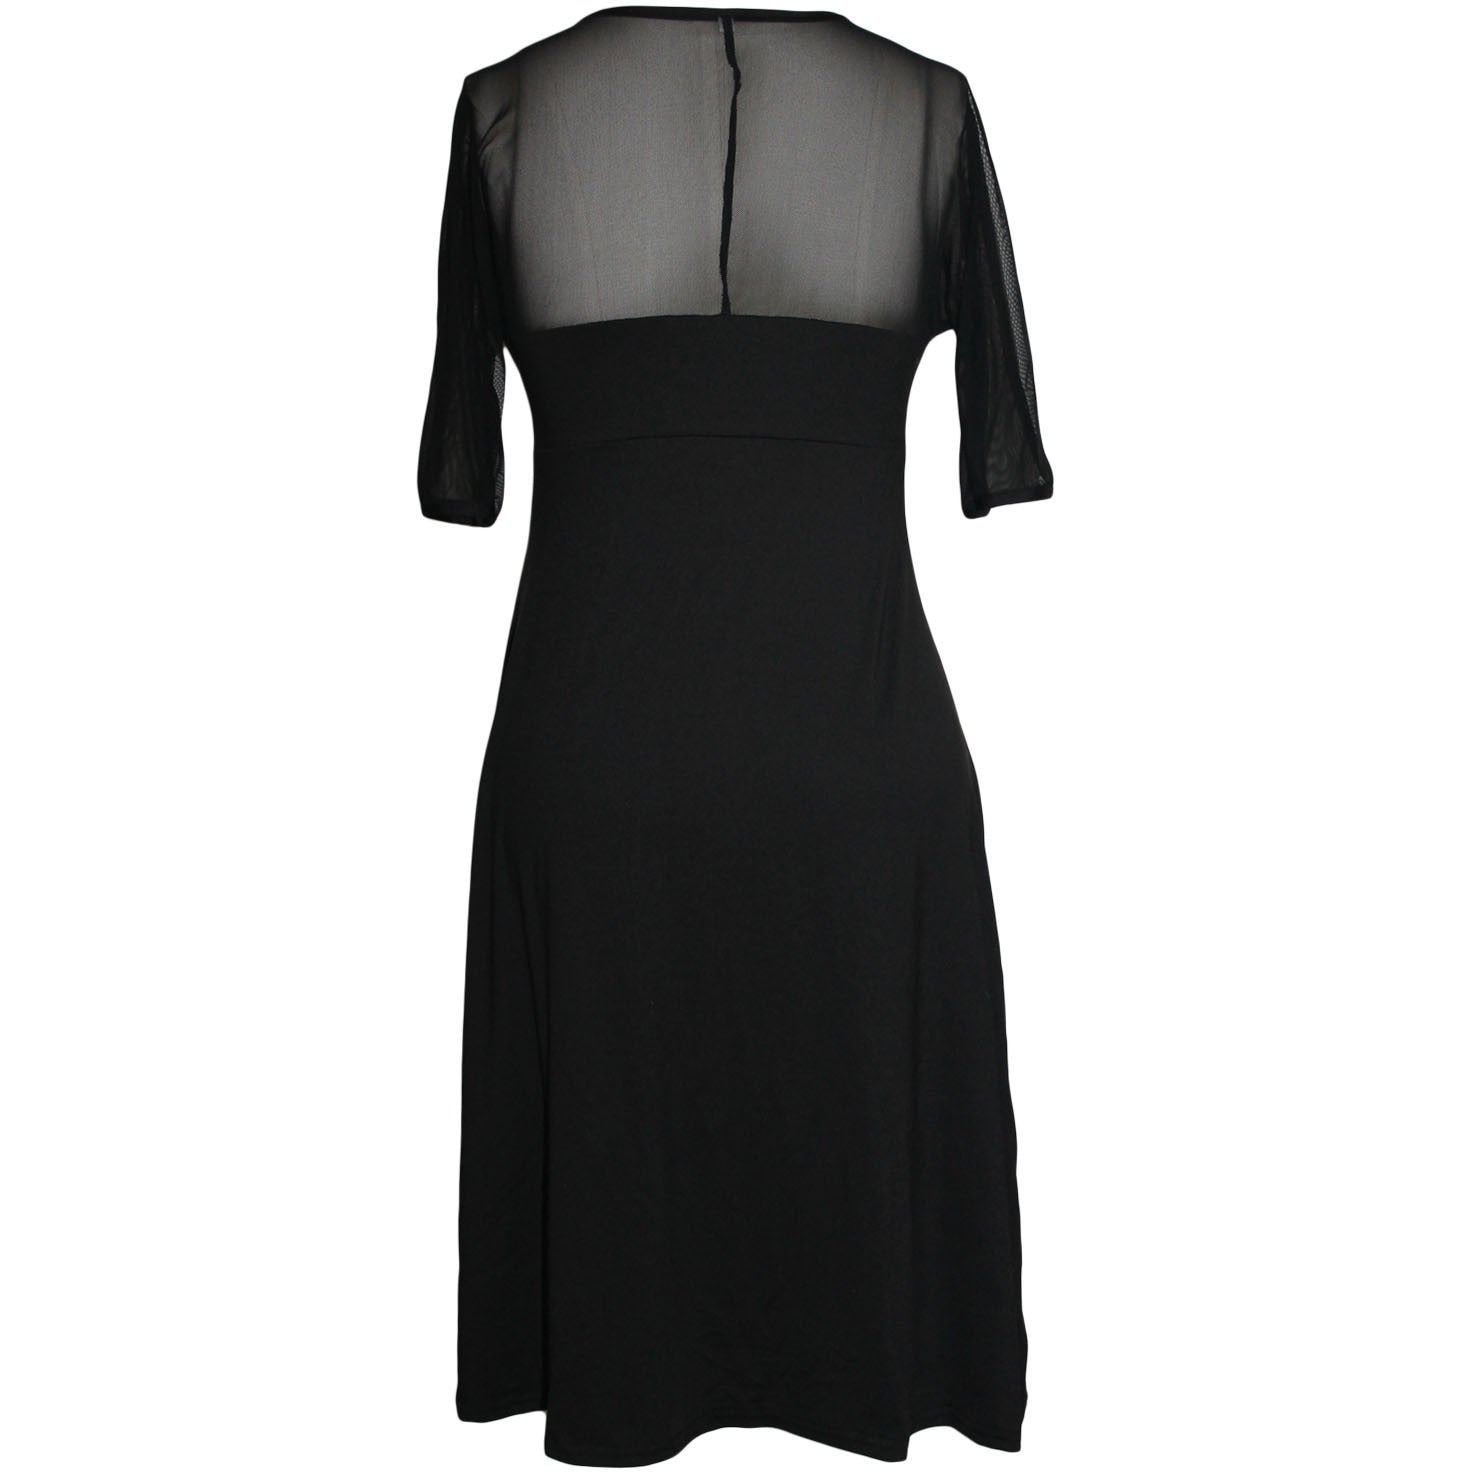 Plus Size Sleeveless Dress Sale LAVELIQ - LAVELIQ - 3